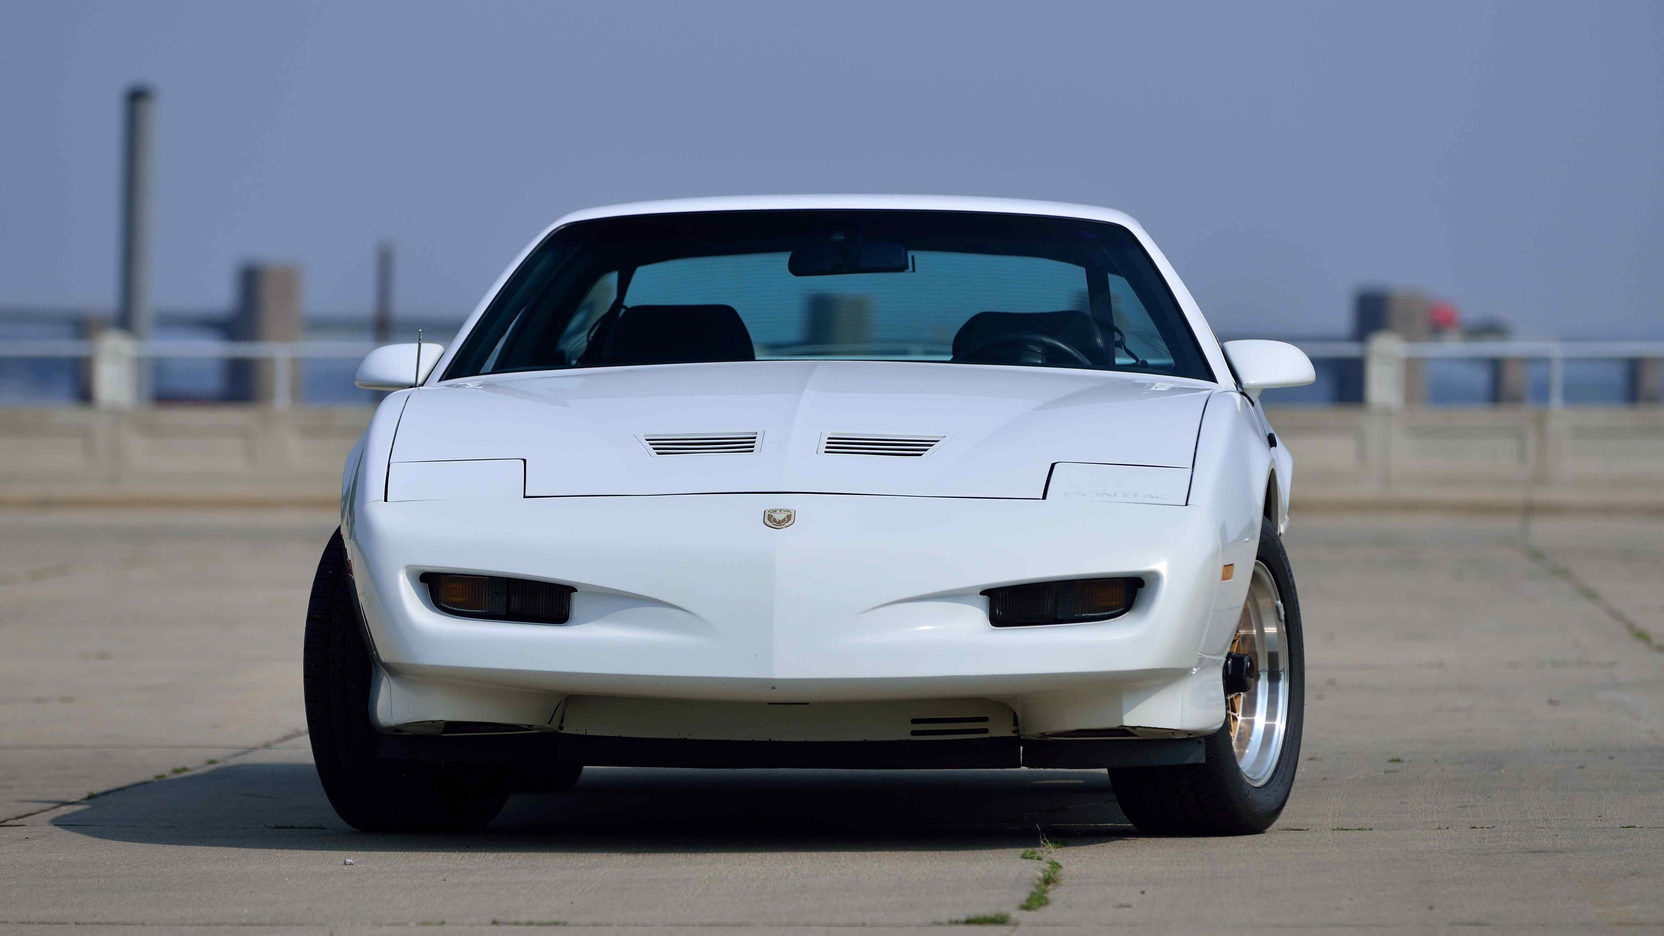 1991 Pontiac Trans Am nose